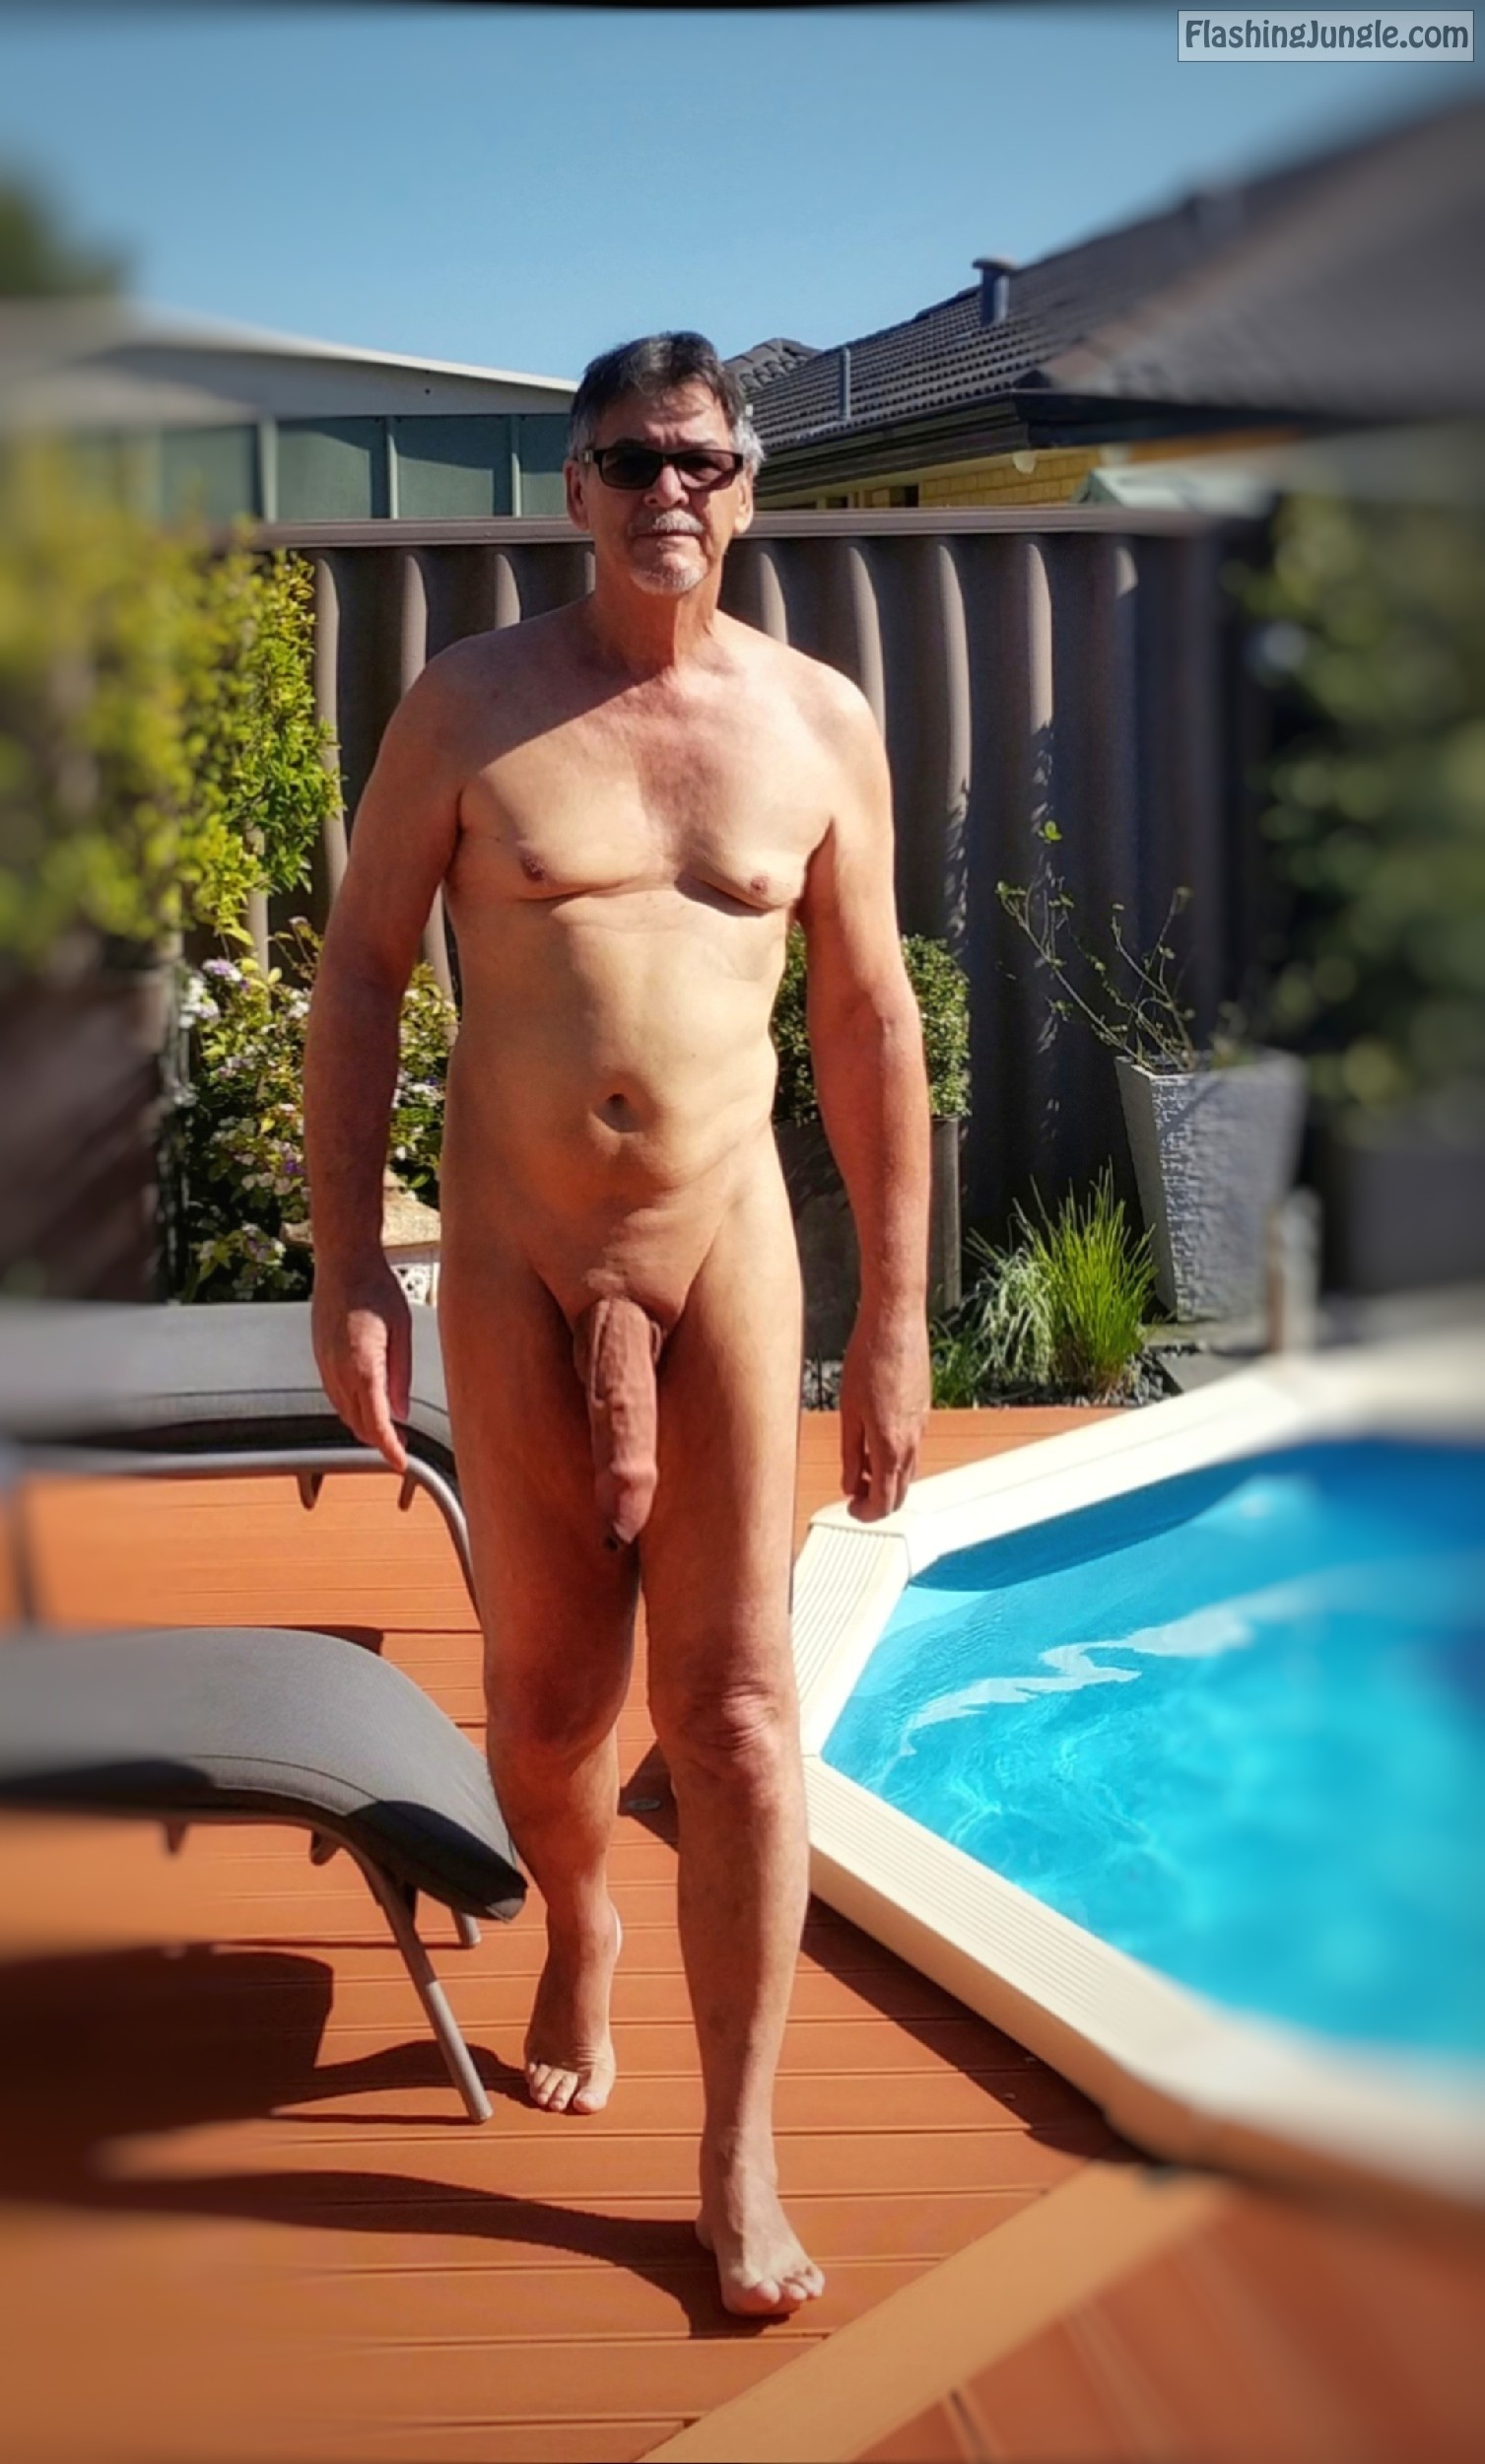 Backyard massive cock nude walk by the swimming pool - True <strong>nudist</strong> 8